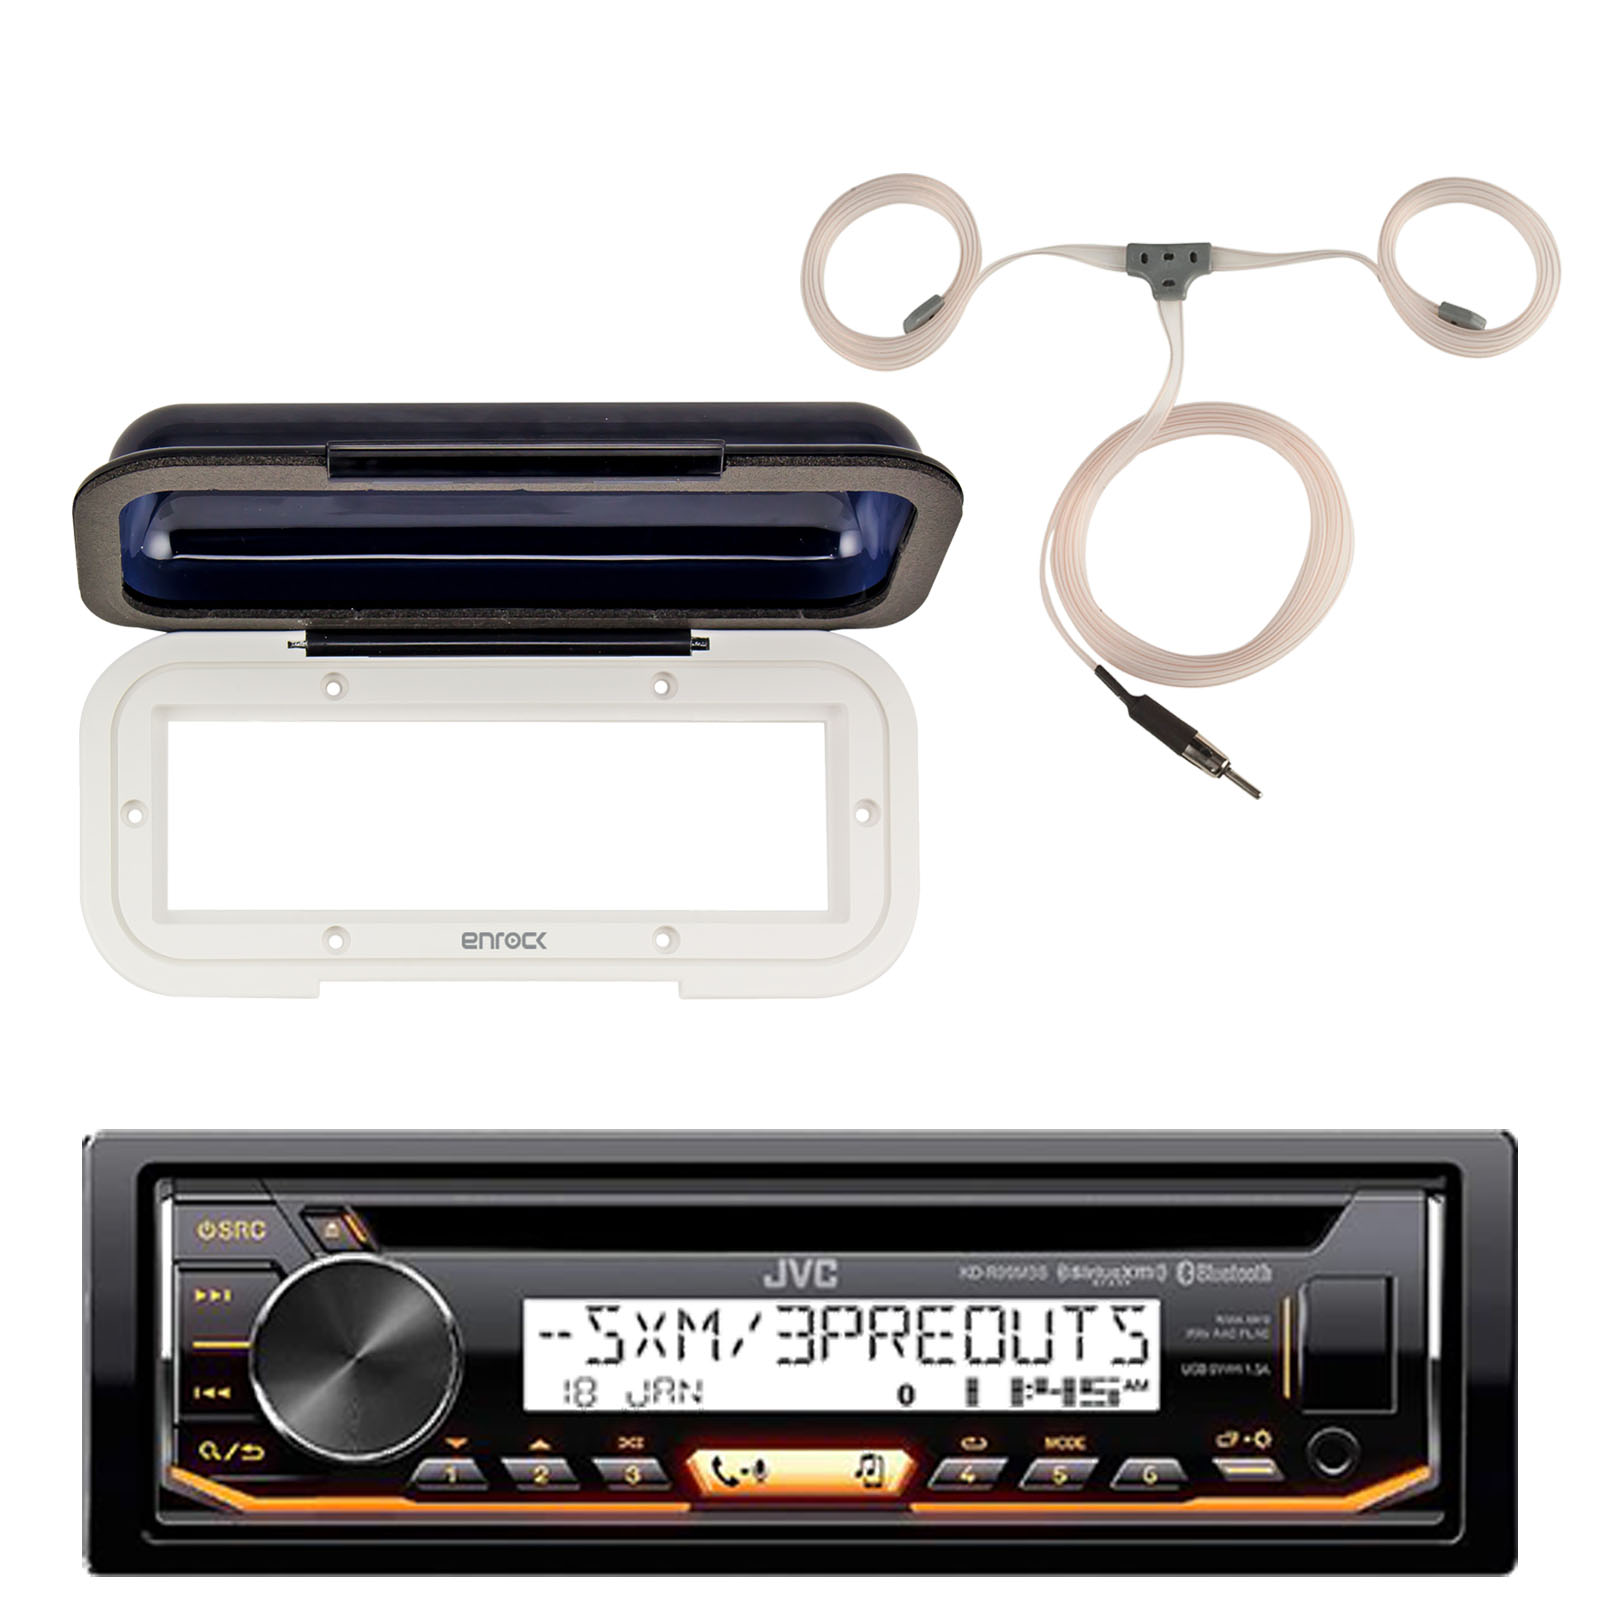 JVC KD-R99MBS Marine Bluetooth CD Receiver, Single DIN Radio Cover - White , Enrock AM/FM Boat Antenna